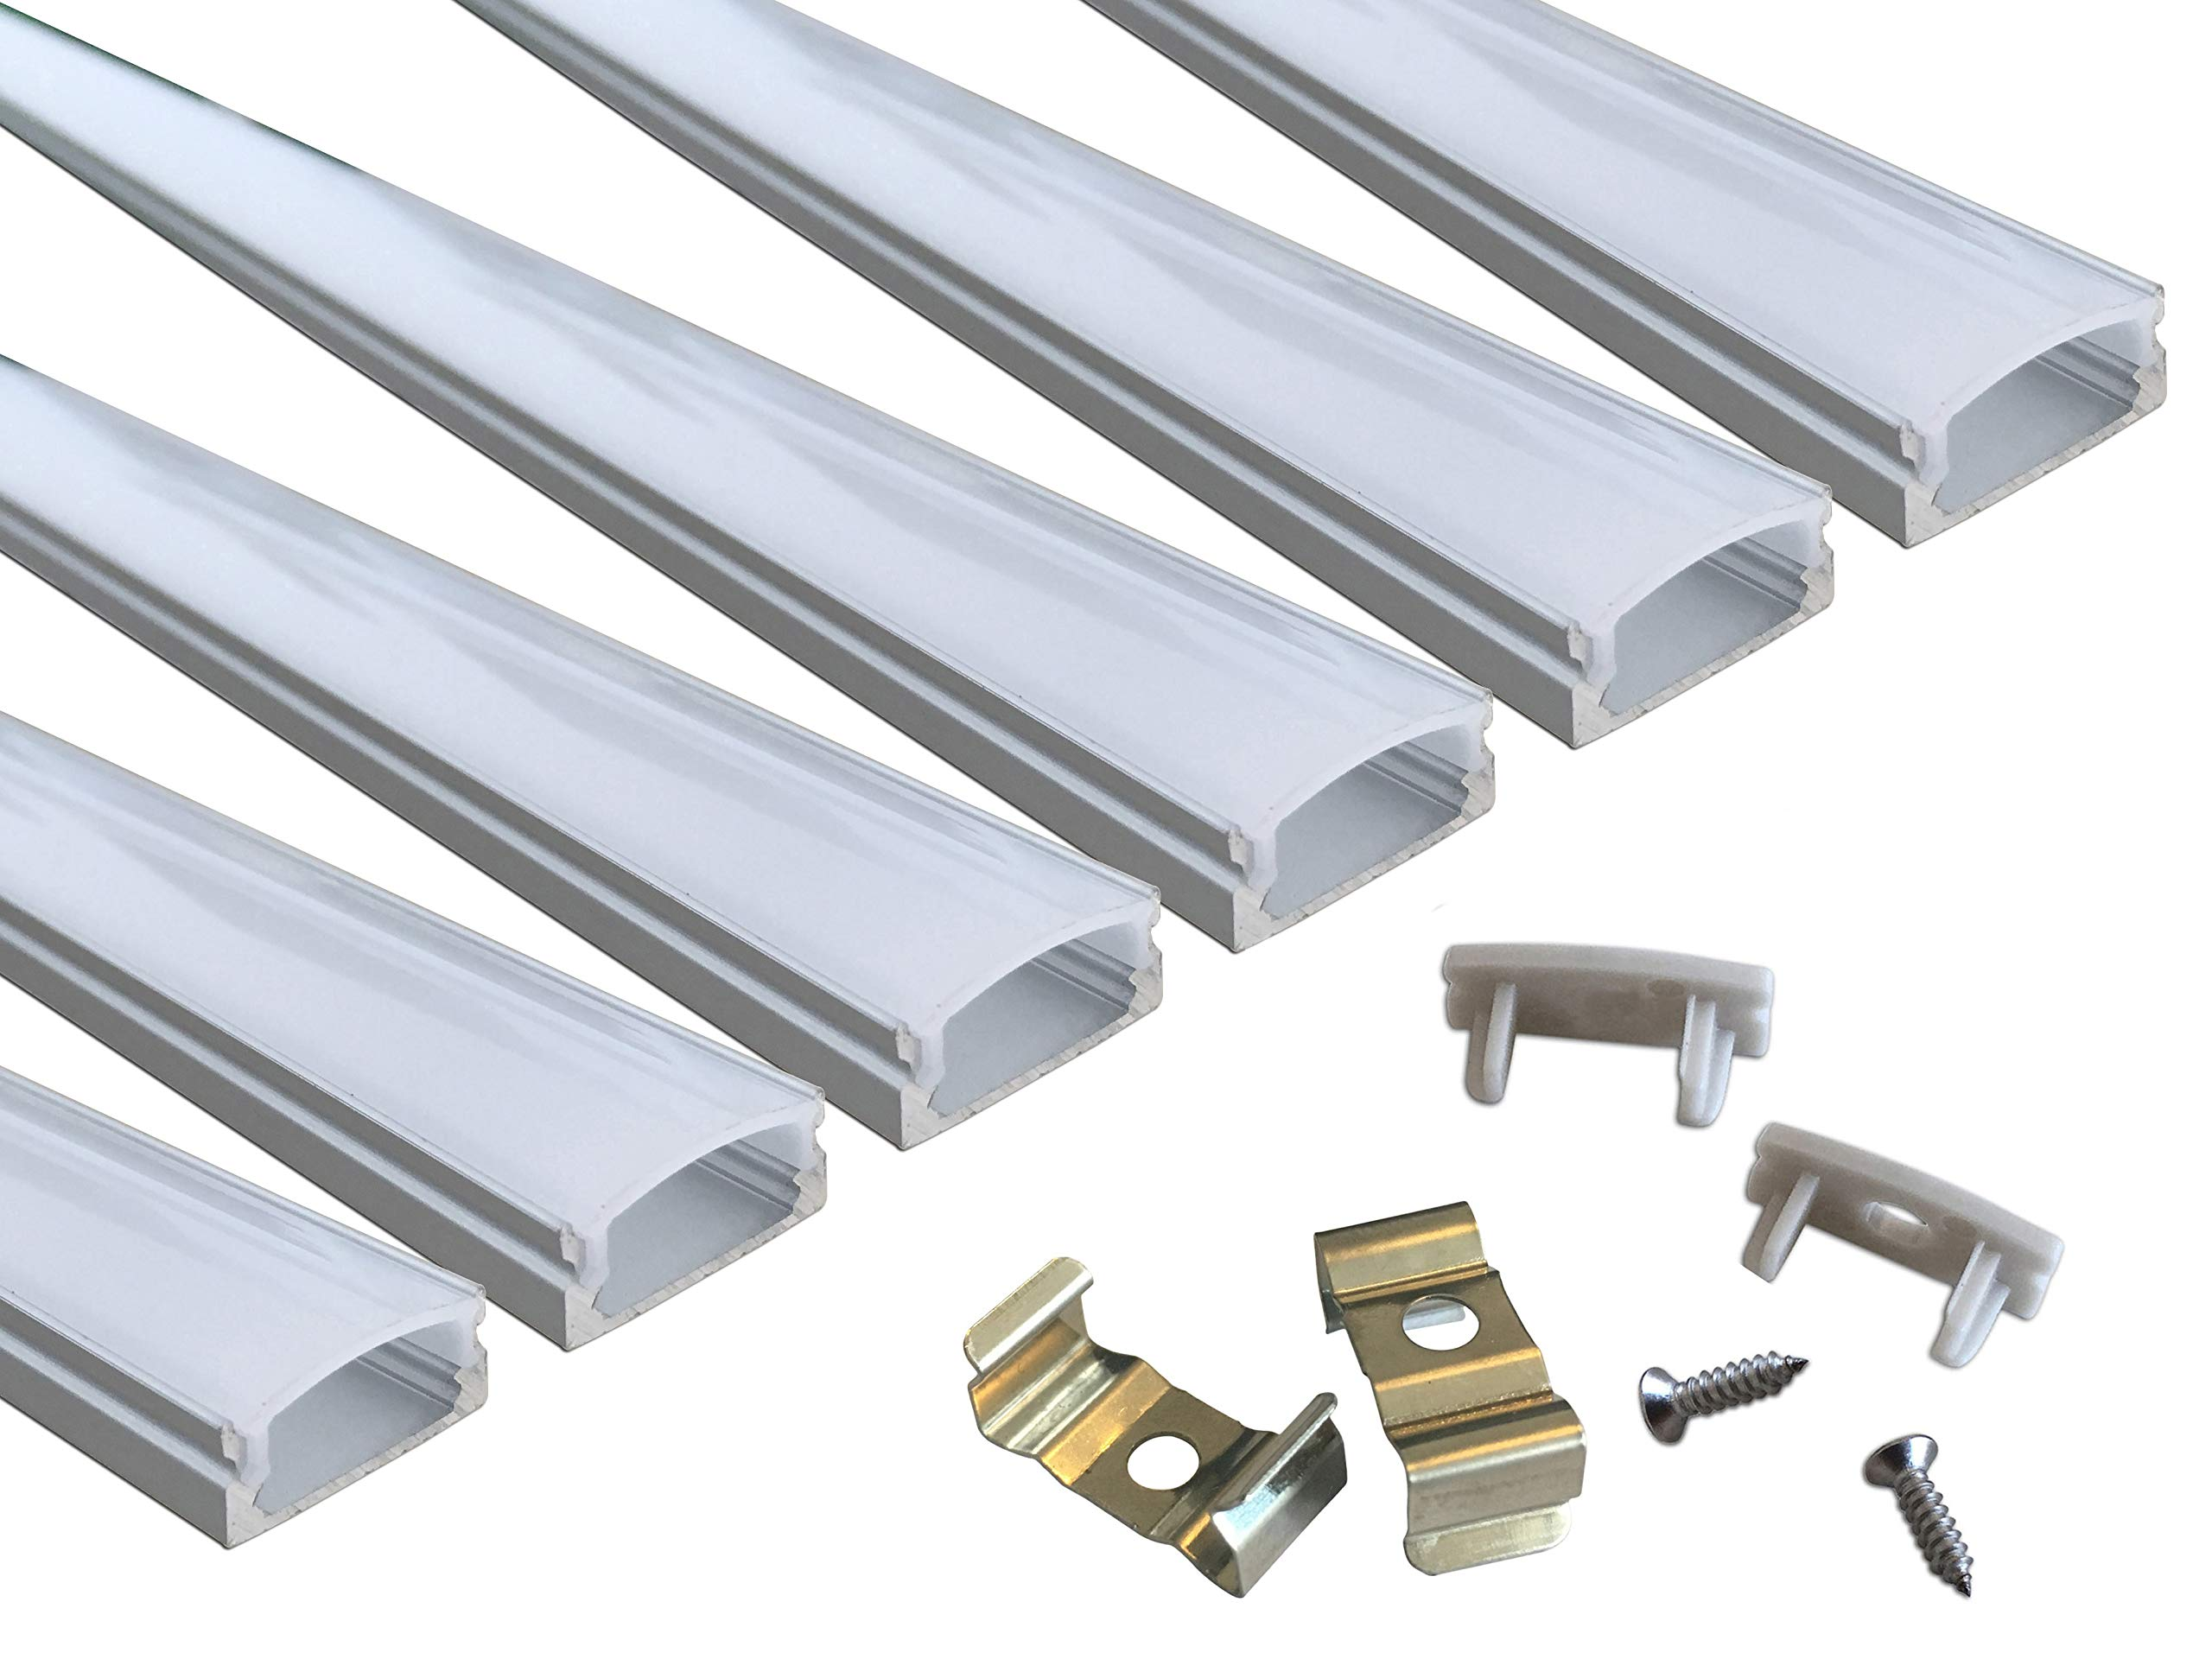 Muzata 6-Pack 3.3ft/1Meter 9x17mm U Shape LED Aluminum Channel System With Cover, End Caps and Mounting Clips Aluminum Profile for LED Strip Light Installations, Led Lights Diffuser Segments by Muzata